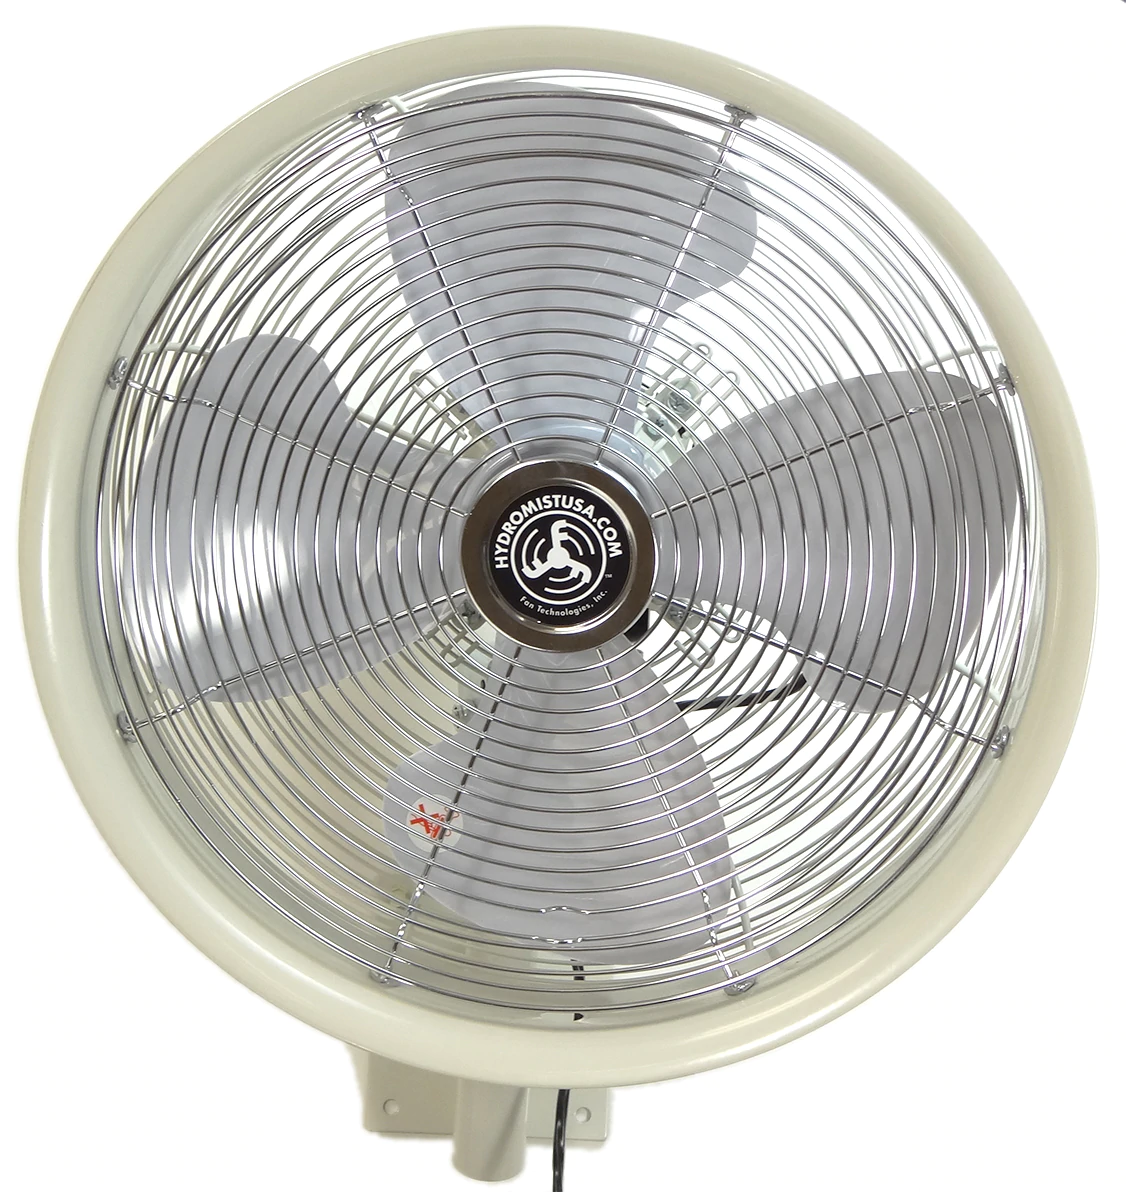 fan with 4 blades front view of 18 inch fan with speed control